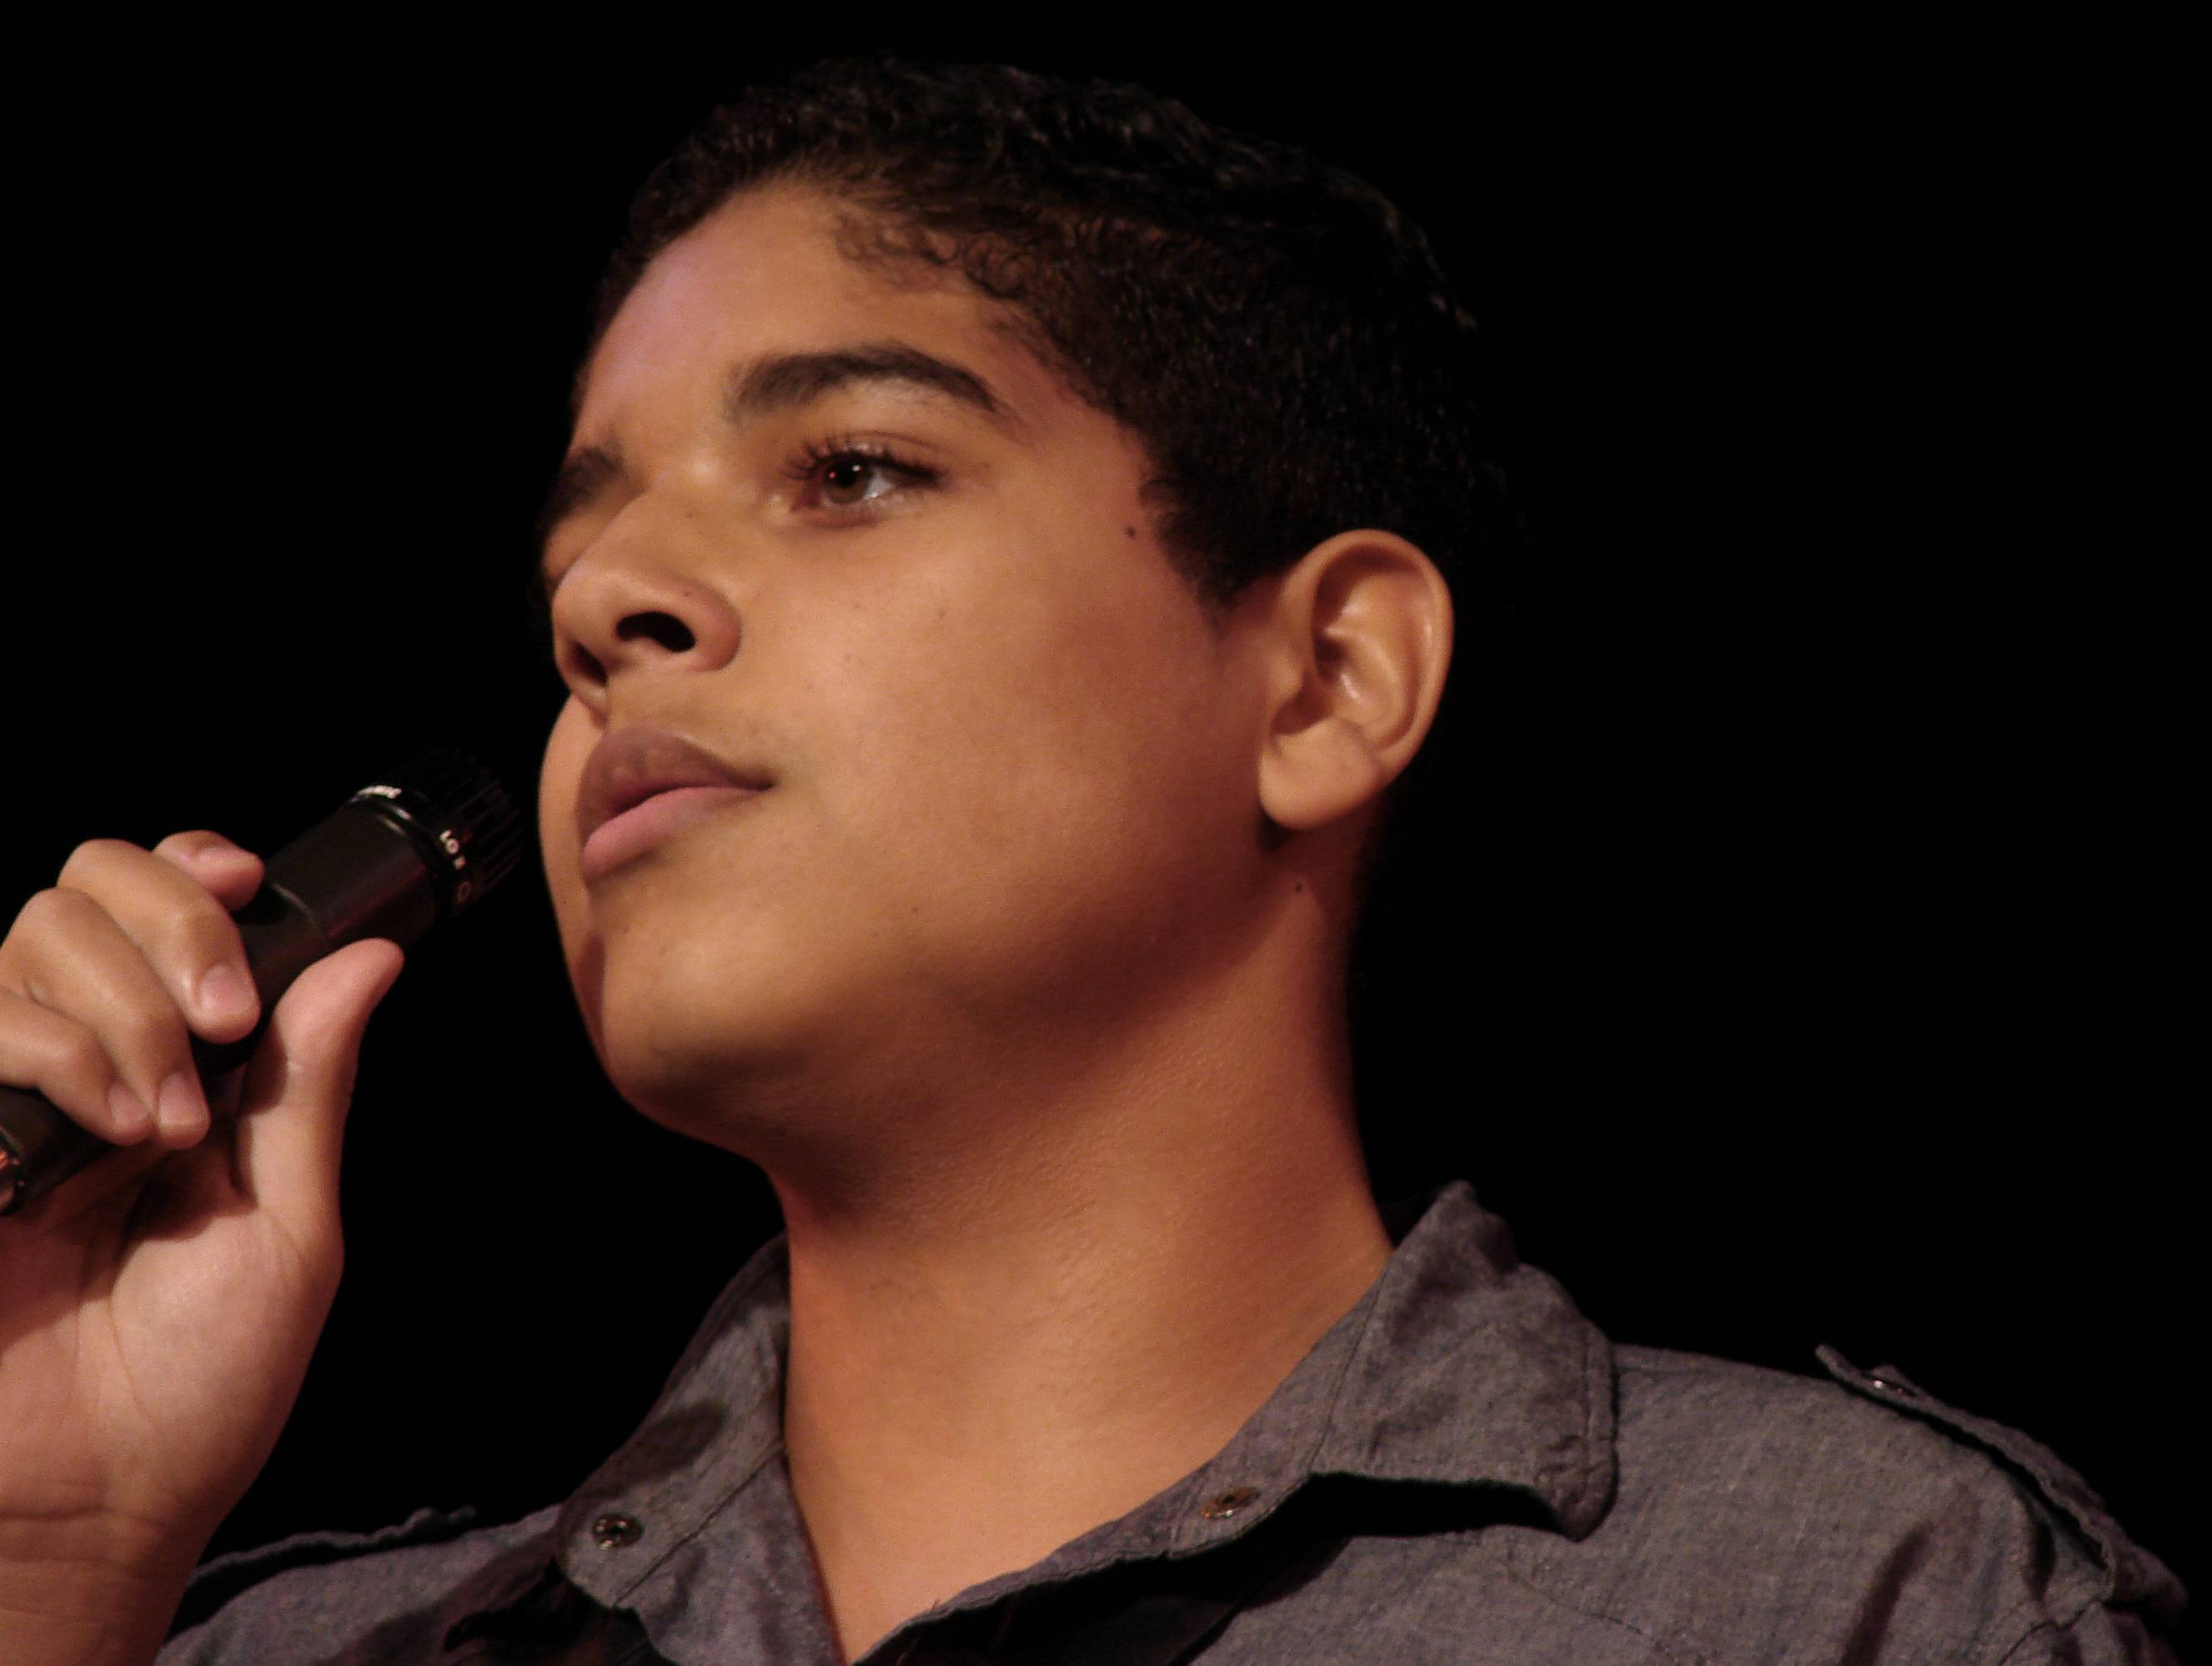 Jacob Metoyer of Itasca performs in the Aurora Public Library's Third Annual Teen Talent Show and Competition in August, 2011.